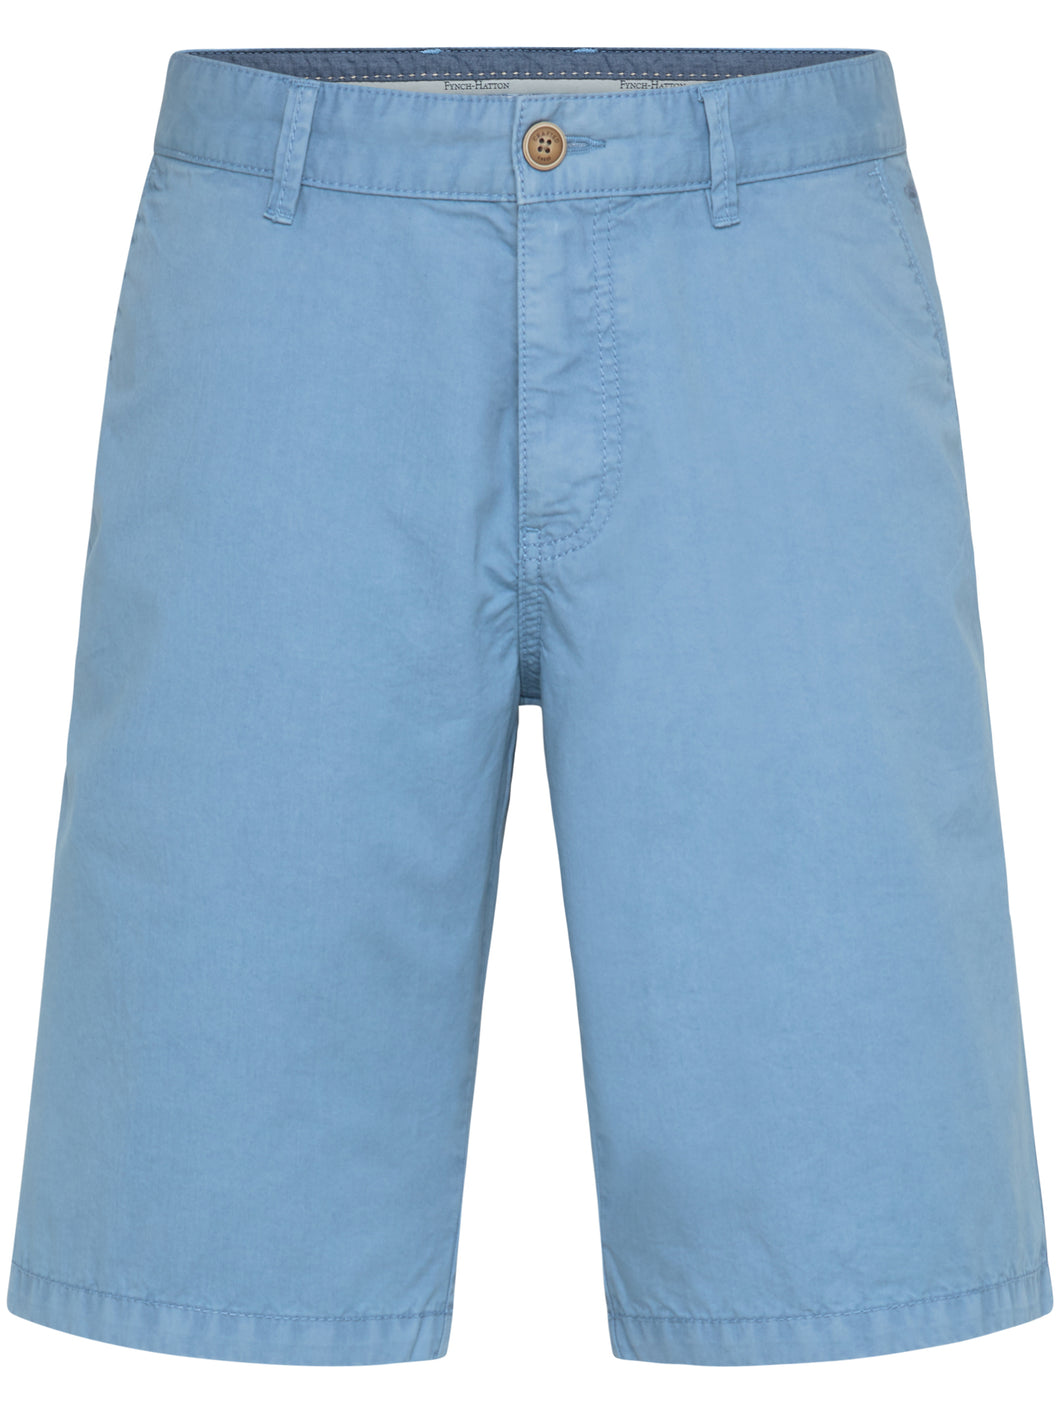 Fynch Hatton Shorts, Cotton, Garment Dyed in regular Classic fit.    Chosen in  Soda